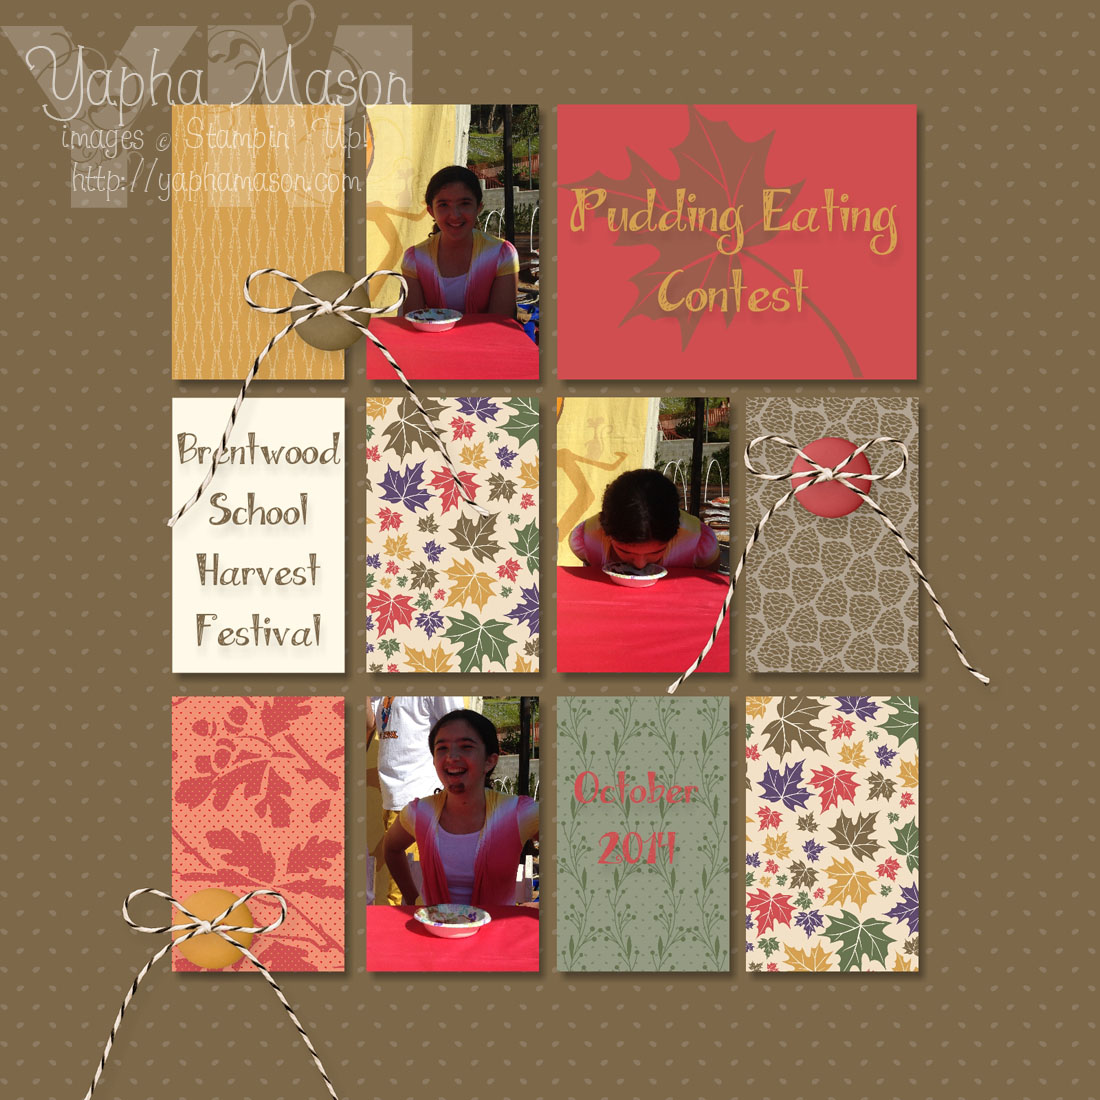 Pudding Eating Scrapbook Page by Yapha